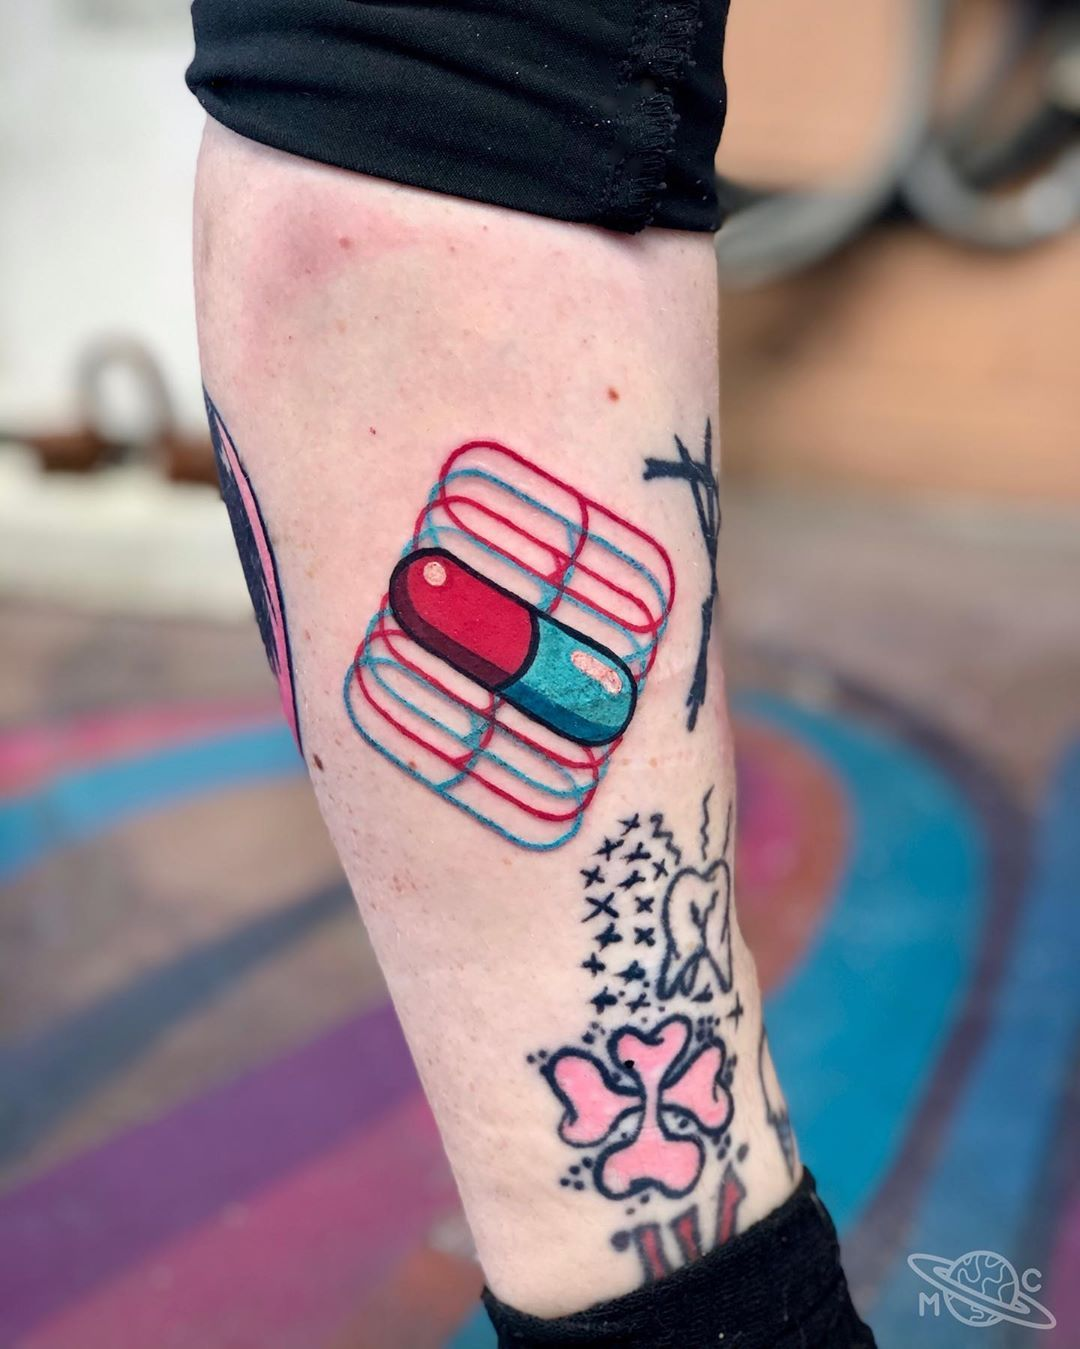 Small Trippy Tattoos : small, trippy, tattoos, Amazing, Psychedelic, Tattoos, Ideas, Mind!, Tattoos,, Bright